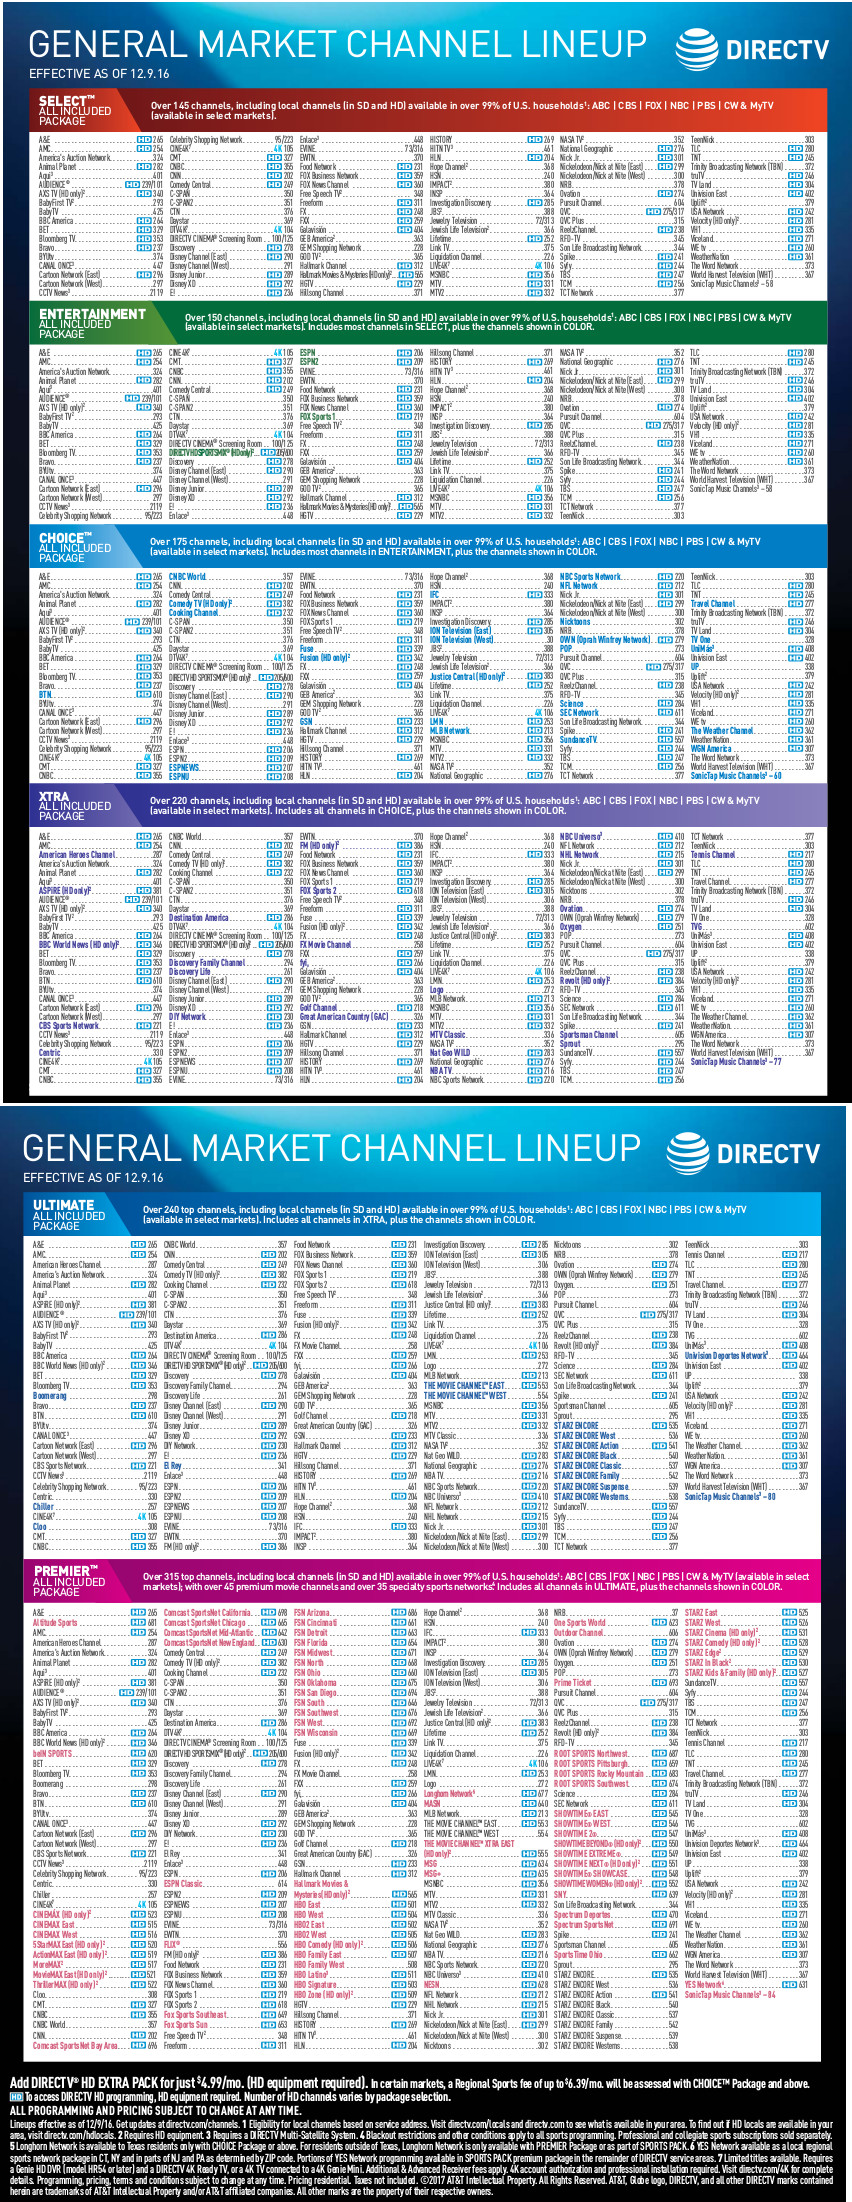 New Providence IA 50206 DirecTV Pricing Specials